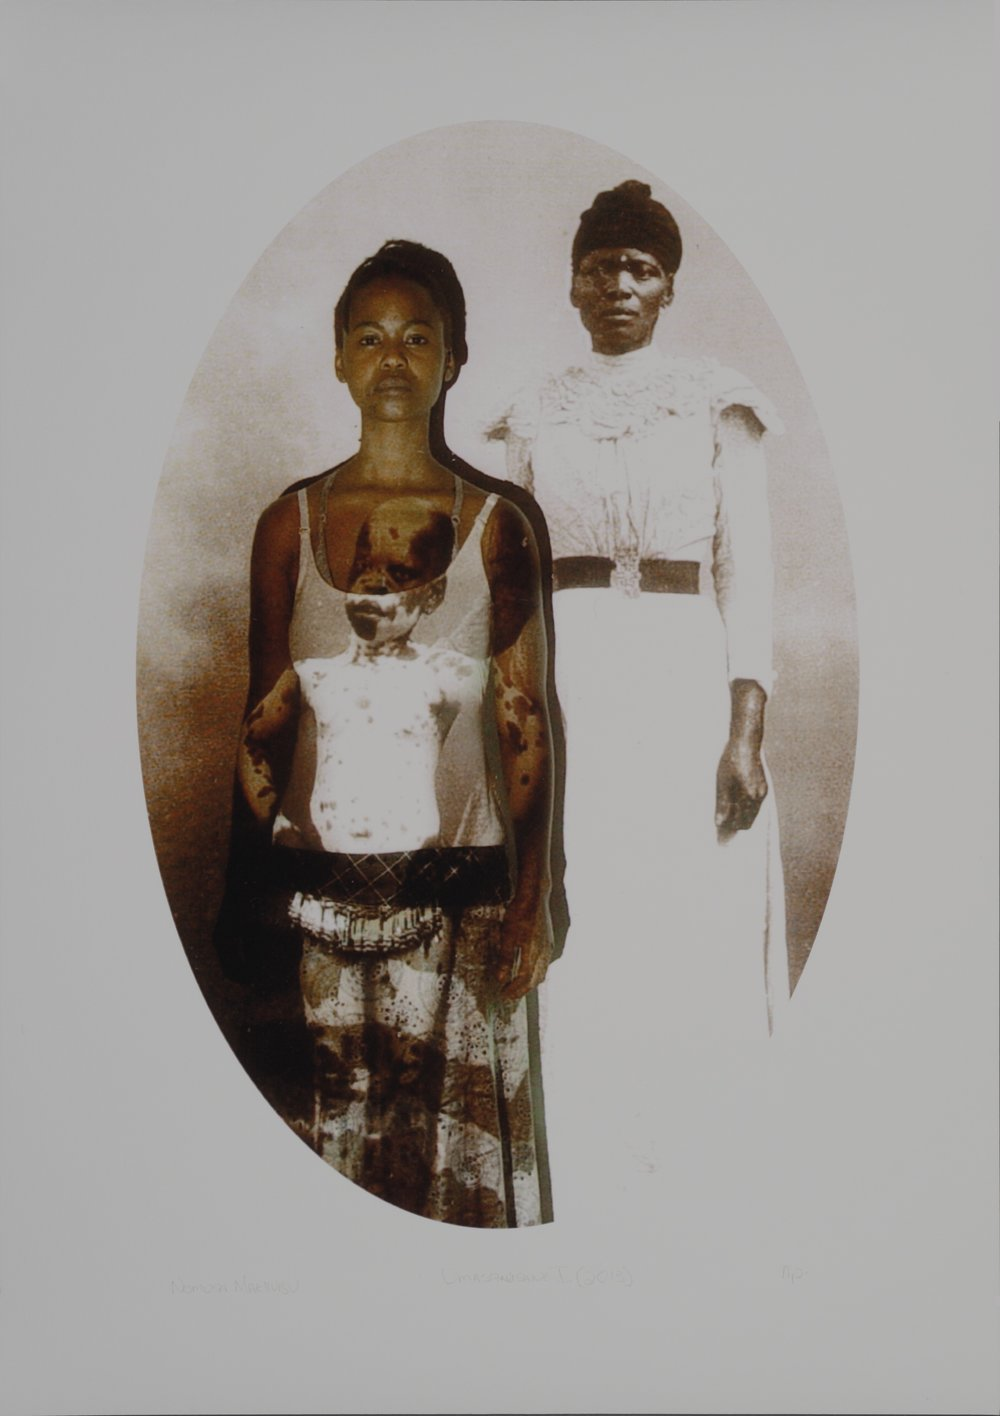 Umqela Nombhaco (Beautification scar) from The Self Portrait Project (2007/2013), 2014